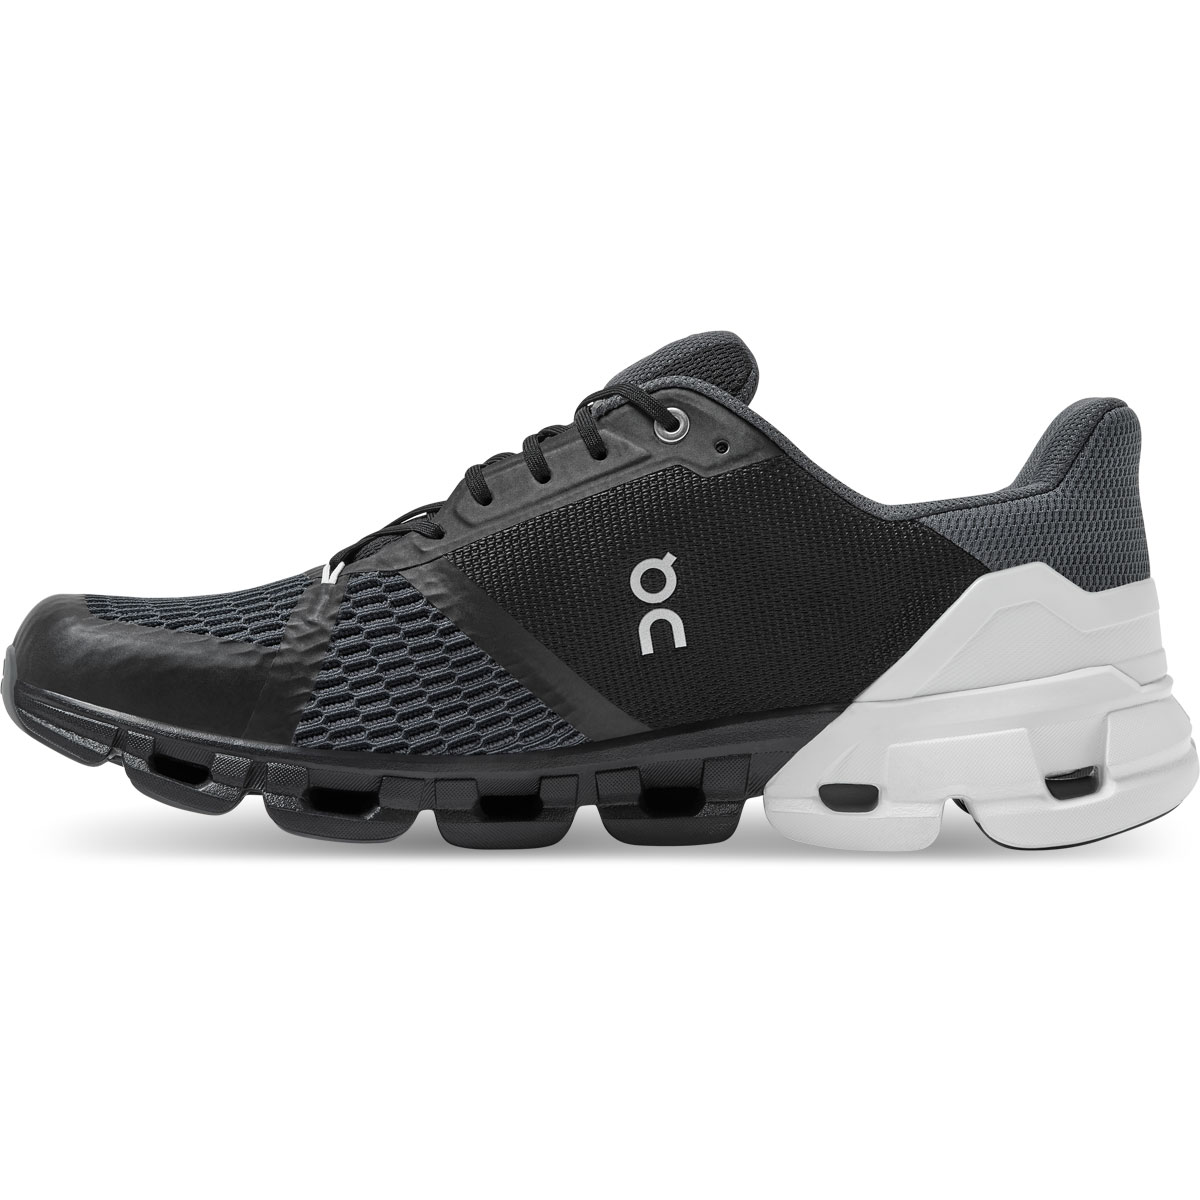 Men's On Cloudflyer 2.0 Running Shoe - Color: Black/White - Size: 7 - Width: Regular, Black/White, large, image 3